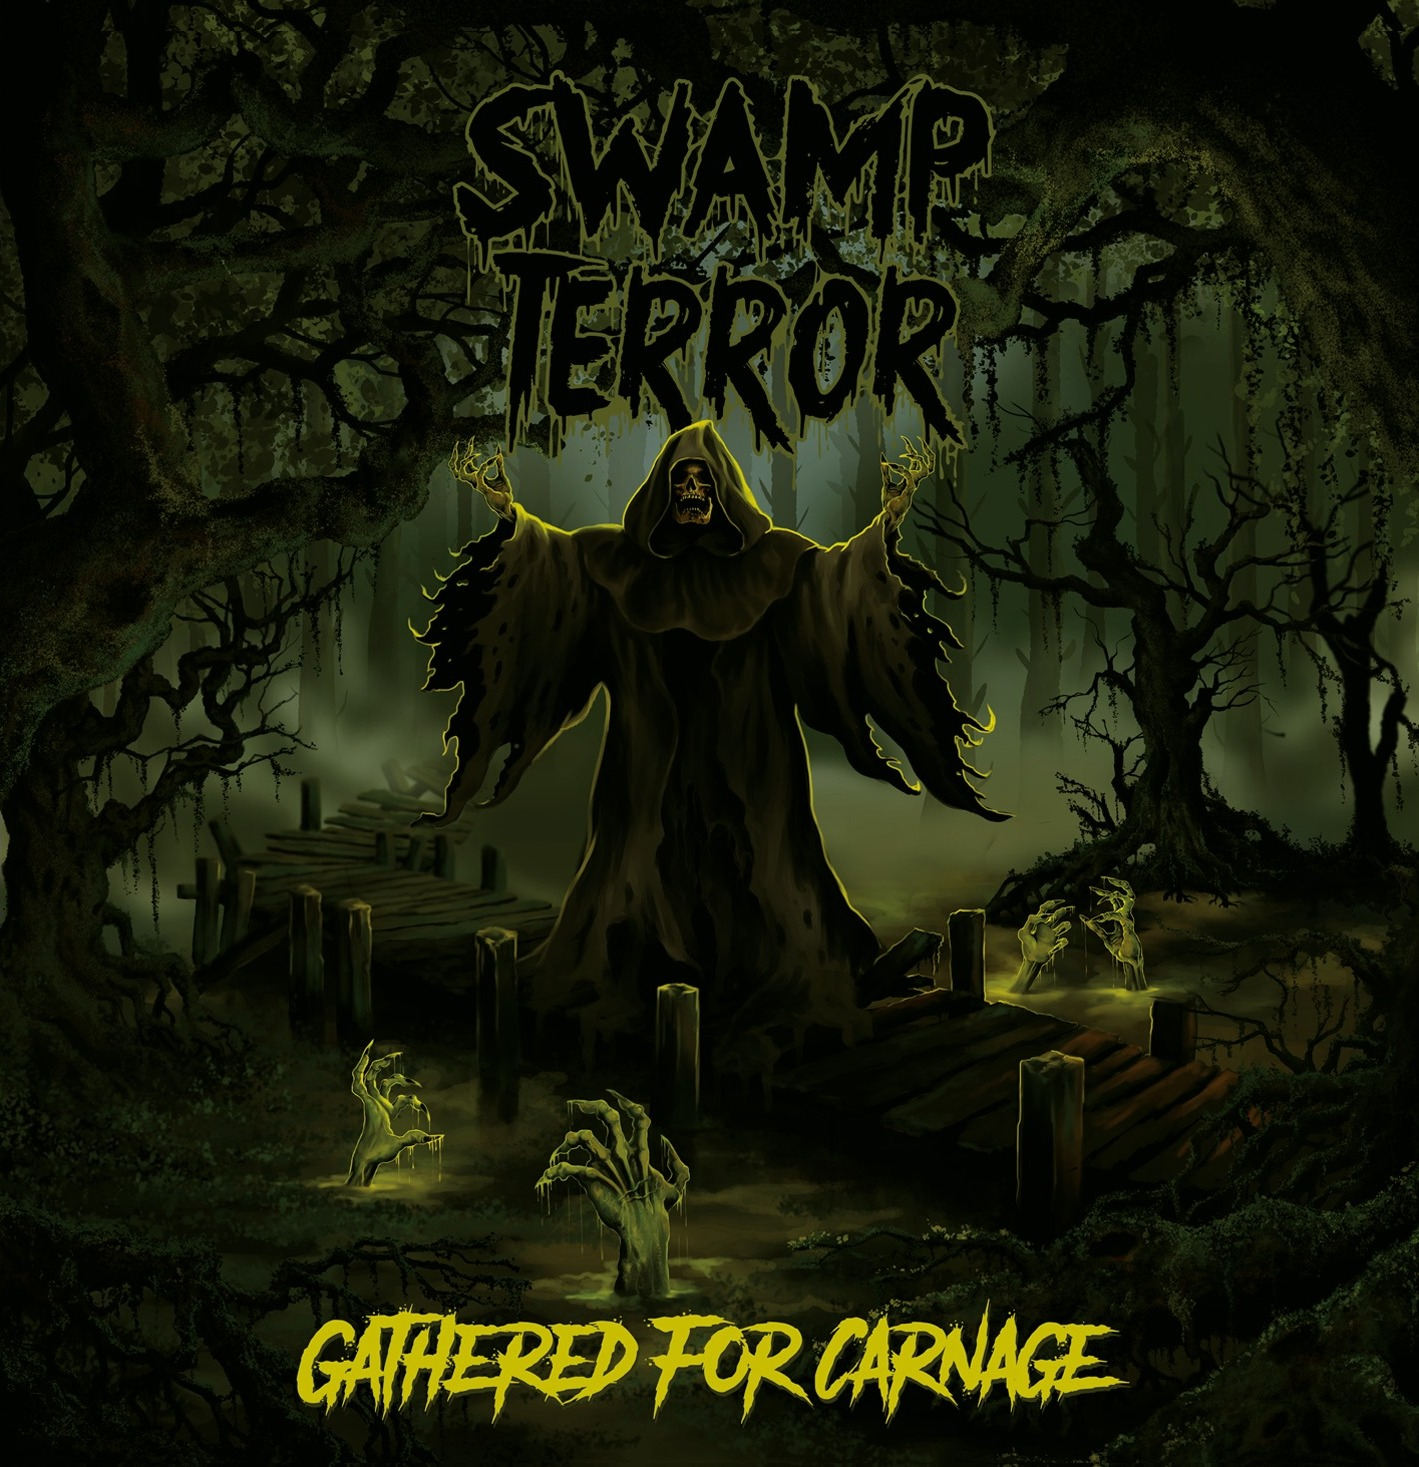 SWAMP TERROR – GATHERED FOR CARNAGE